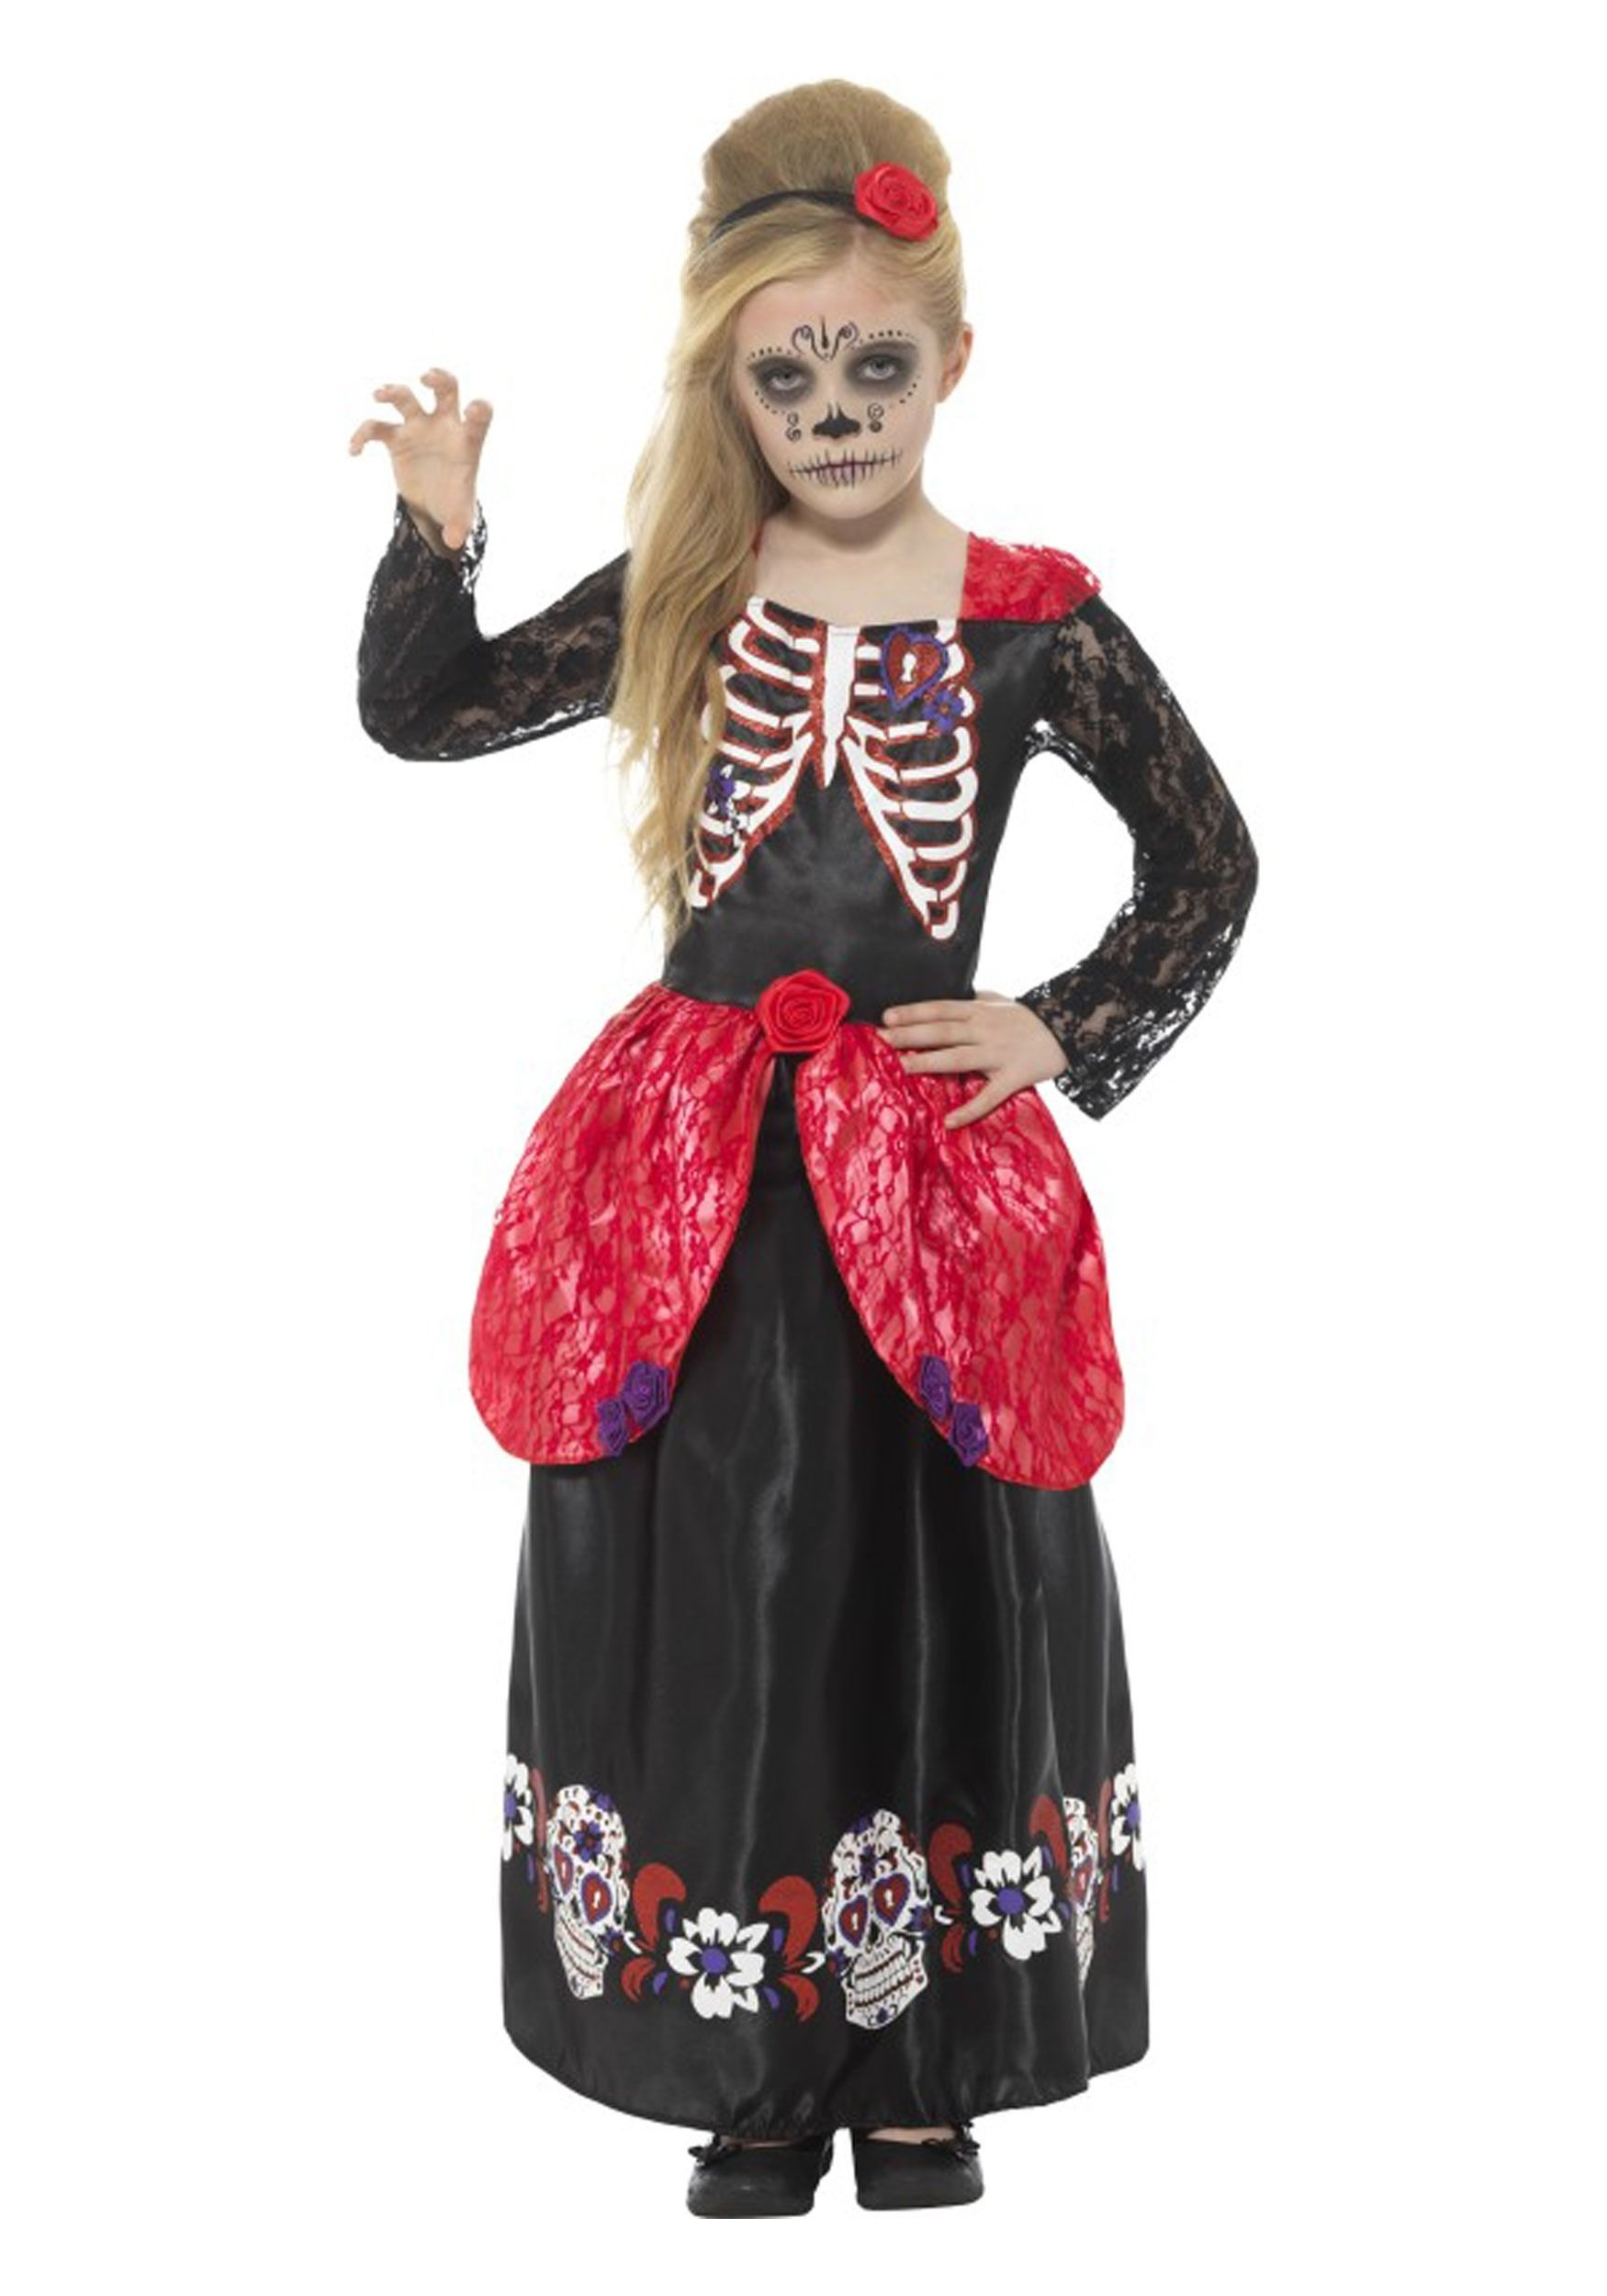 Image Result For Sugar Skull Halloween Costumes For 9 Year Old Girl